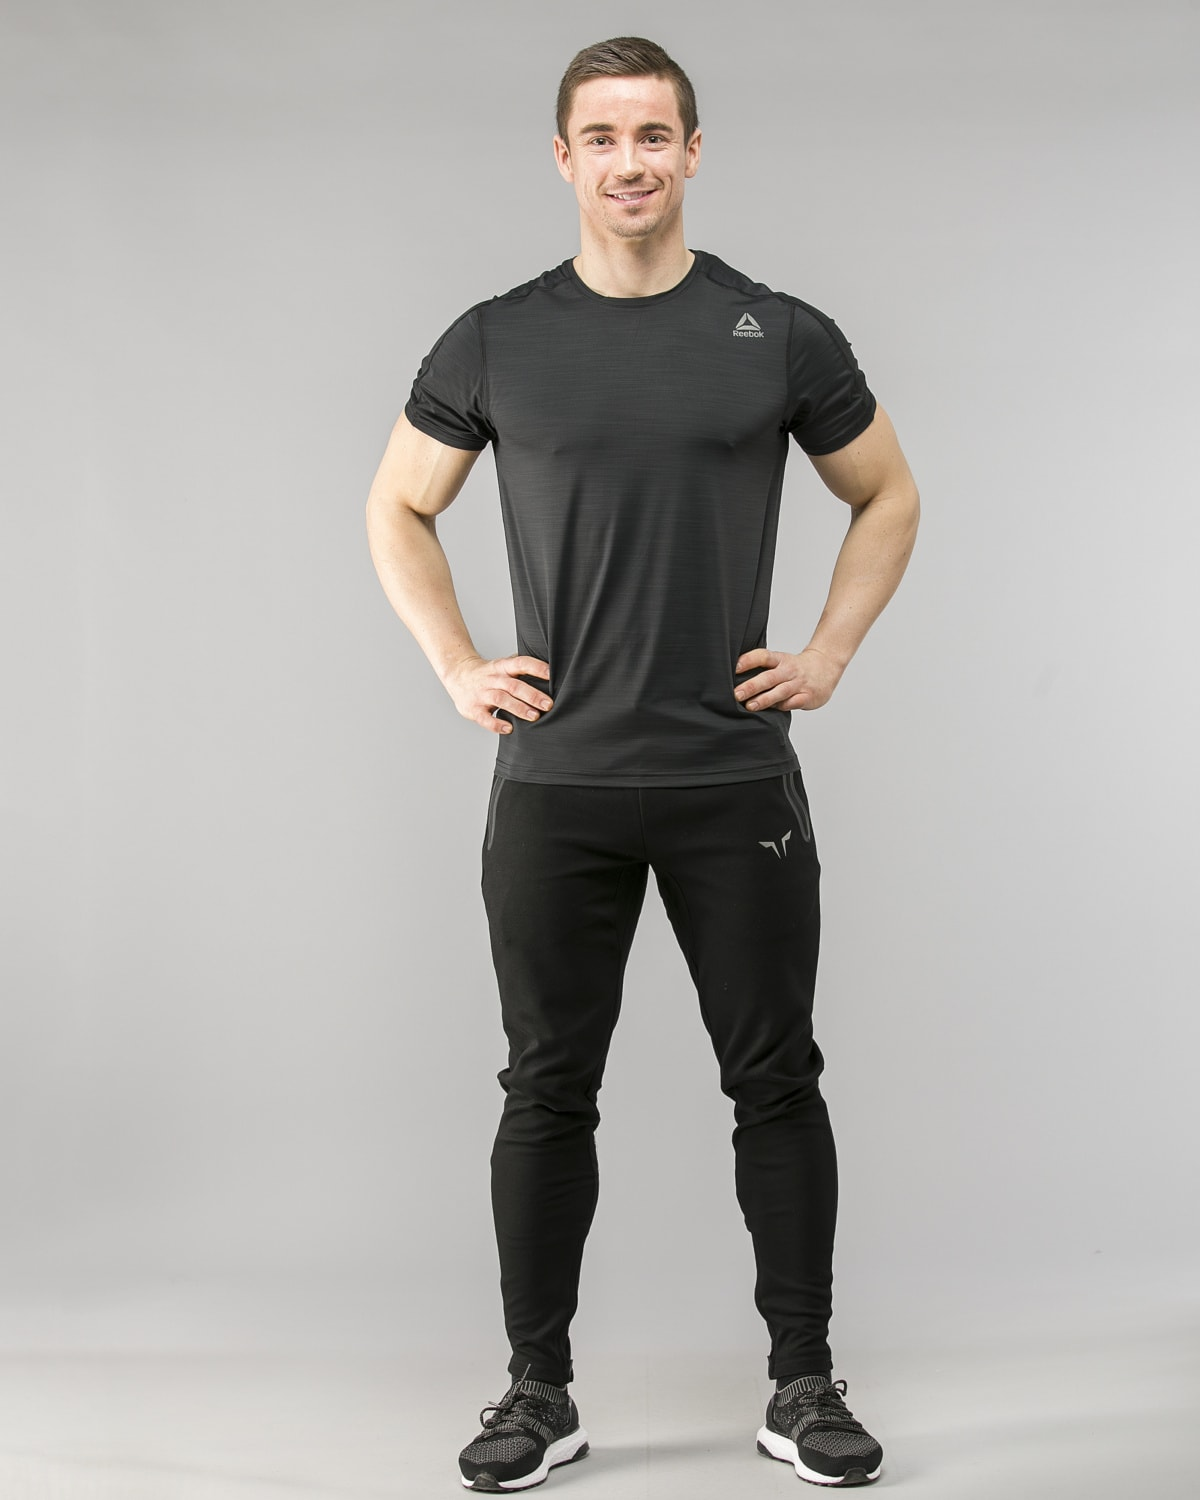 Reebok ActivChill Move T-Shirt – Black cf7877 5